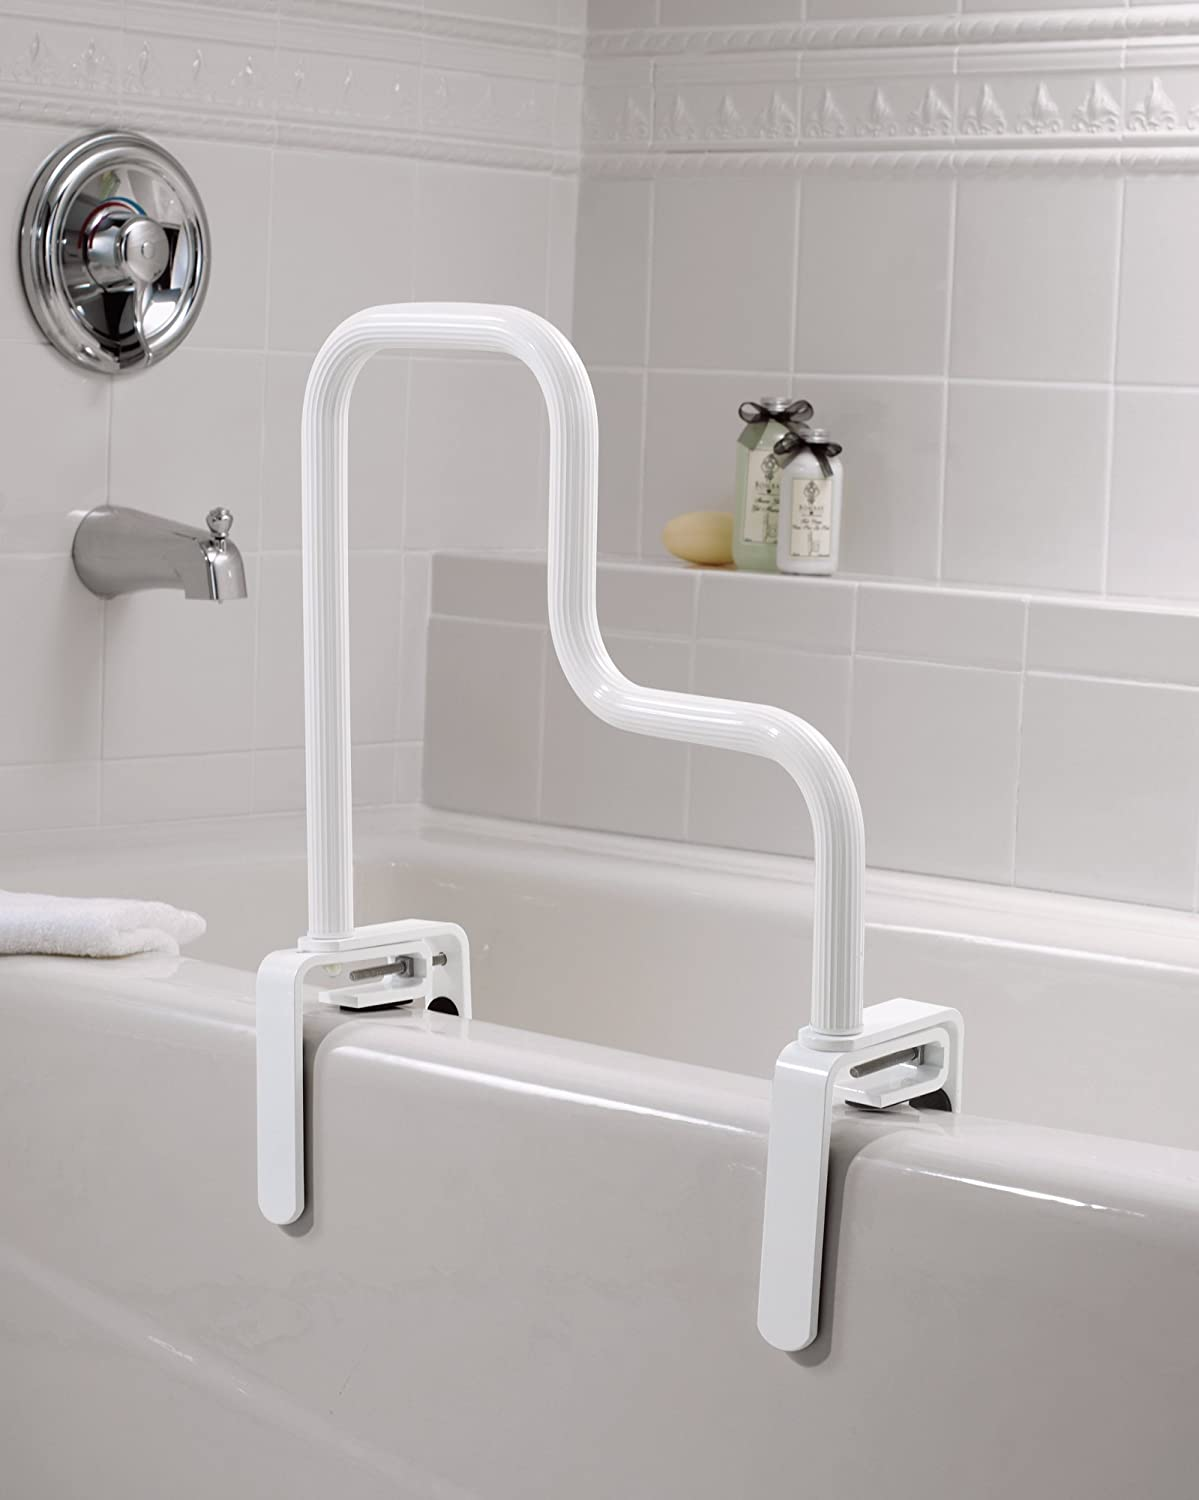 in metro showers bars grab for tubs bathtub bathroom toilets handrails shower detroit